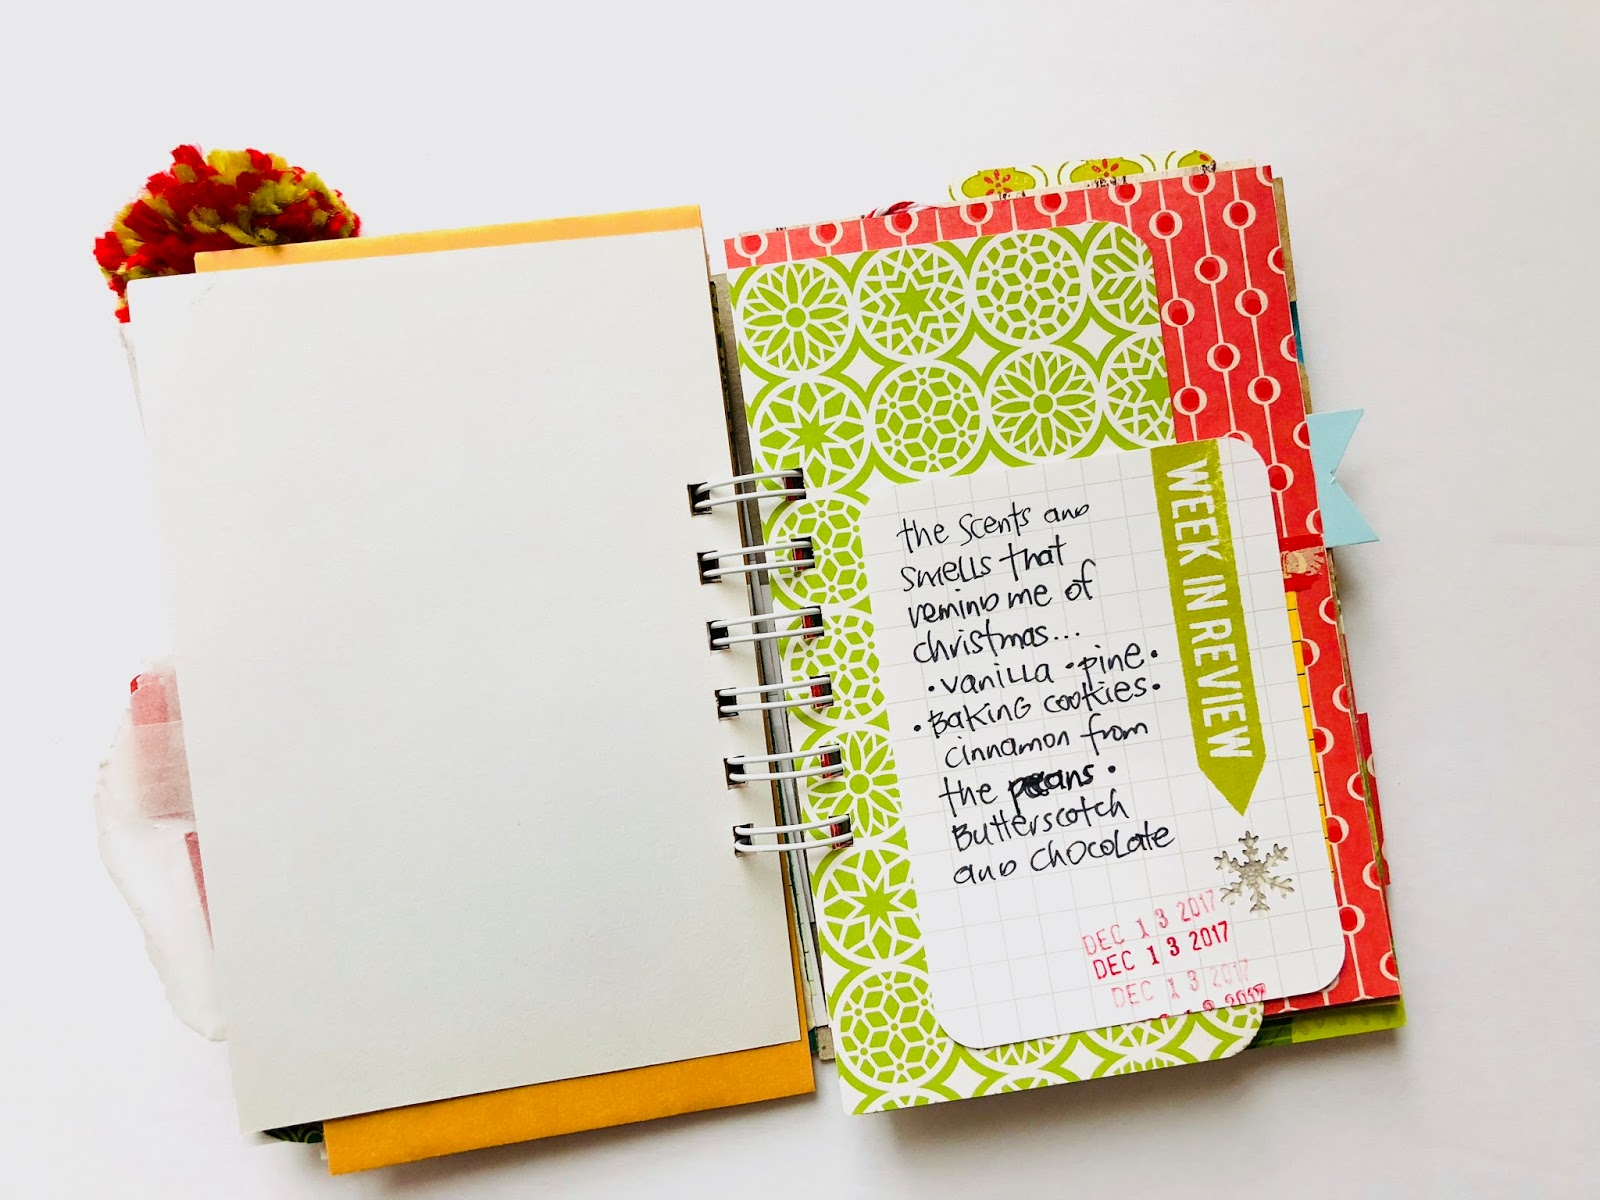 #scents #smells #lists #30lists #list #season #journal #mixed #media